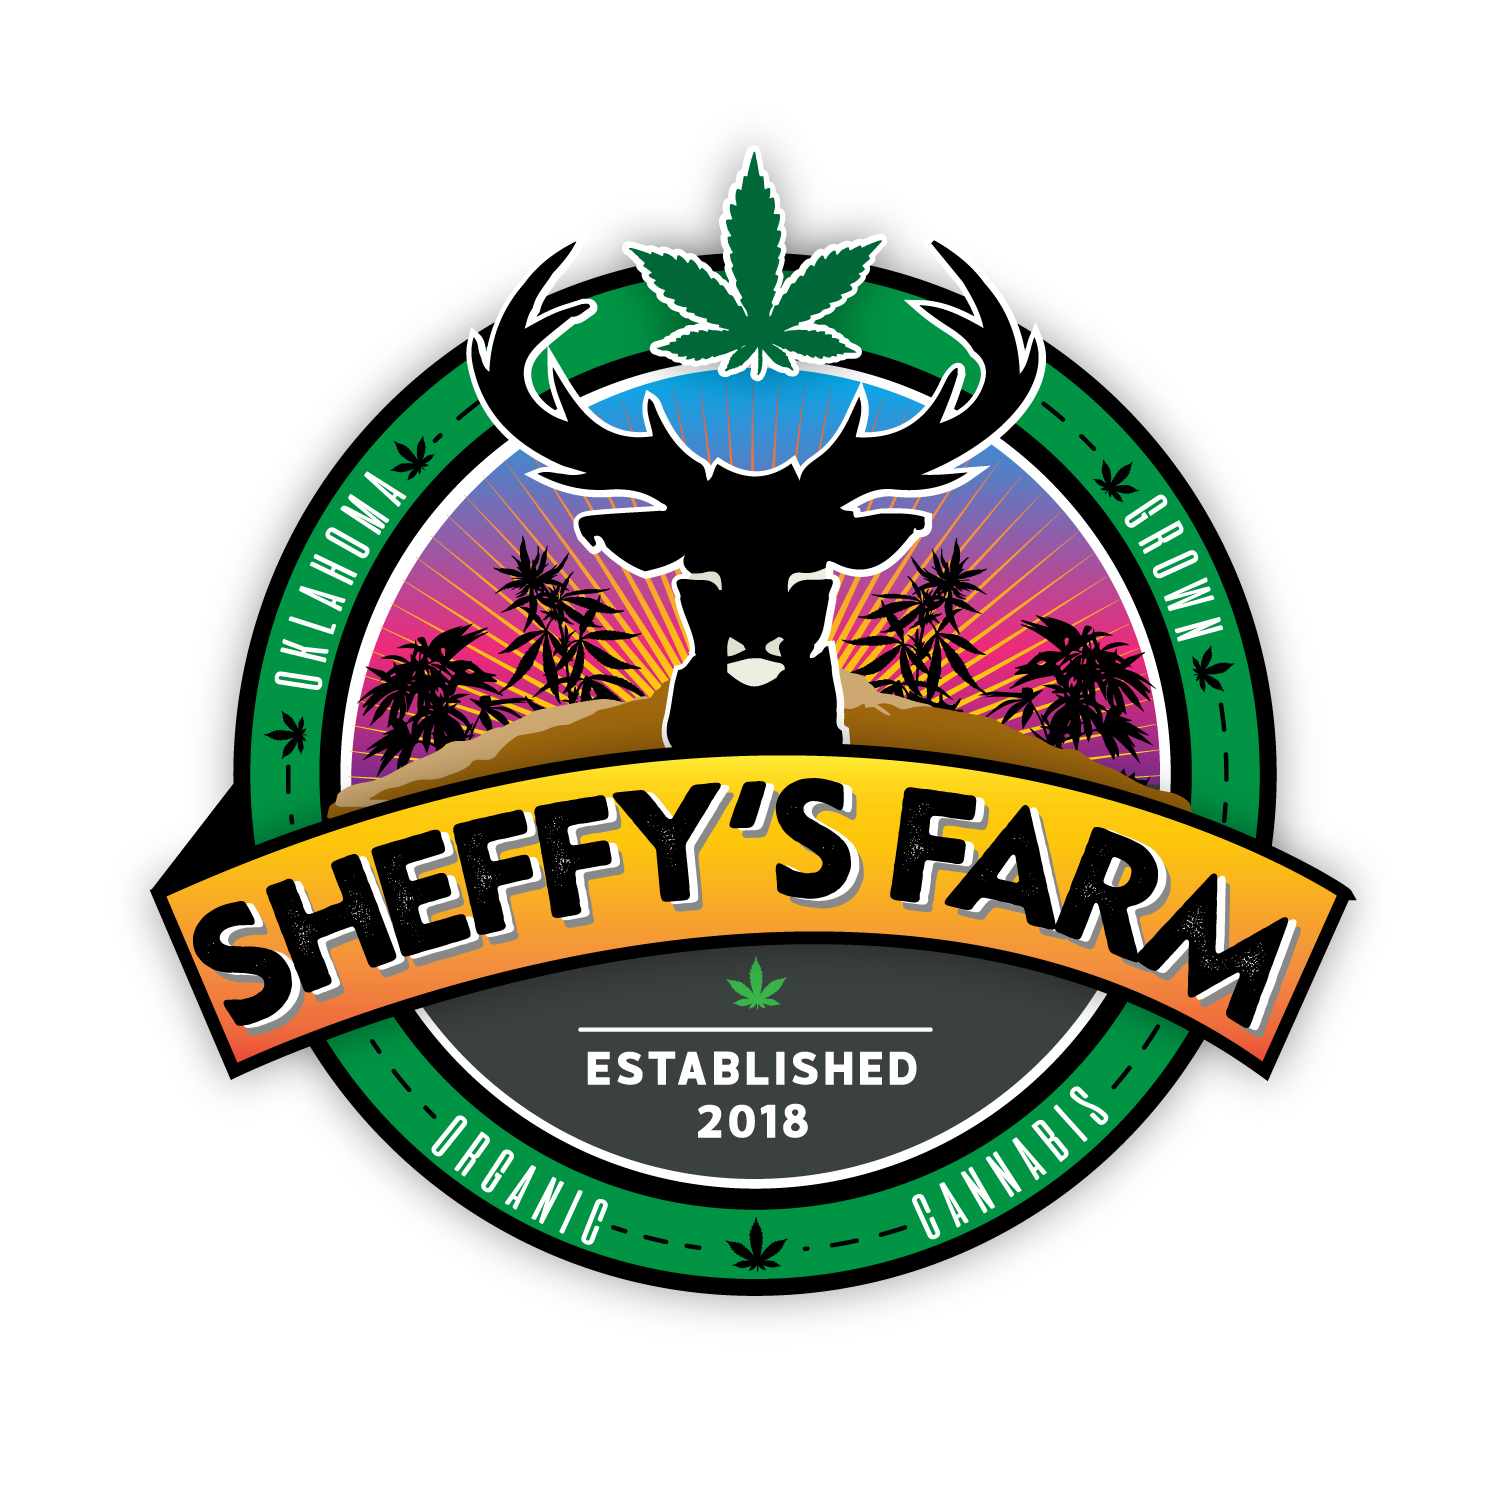 Sheffy's Farm LOGO-01 white